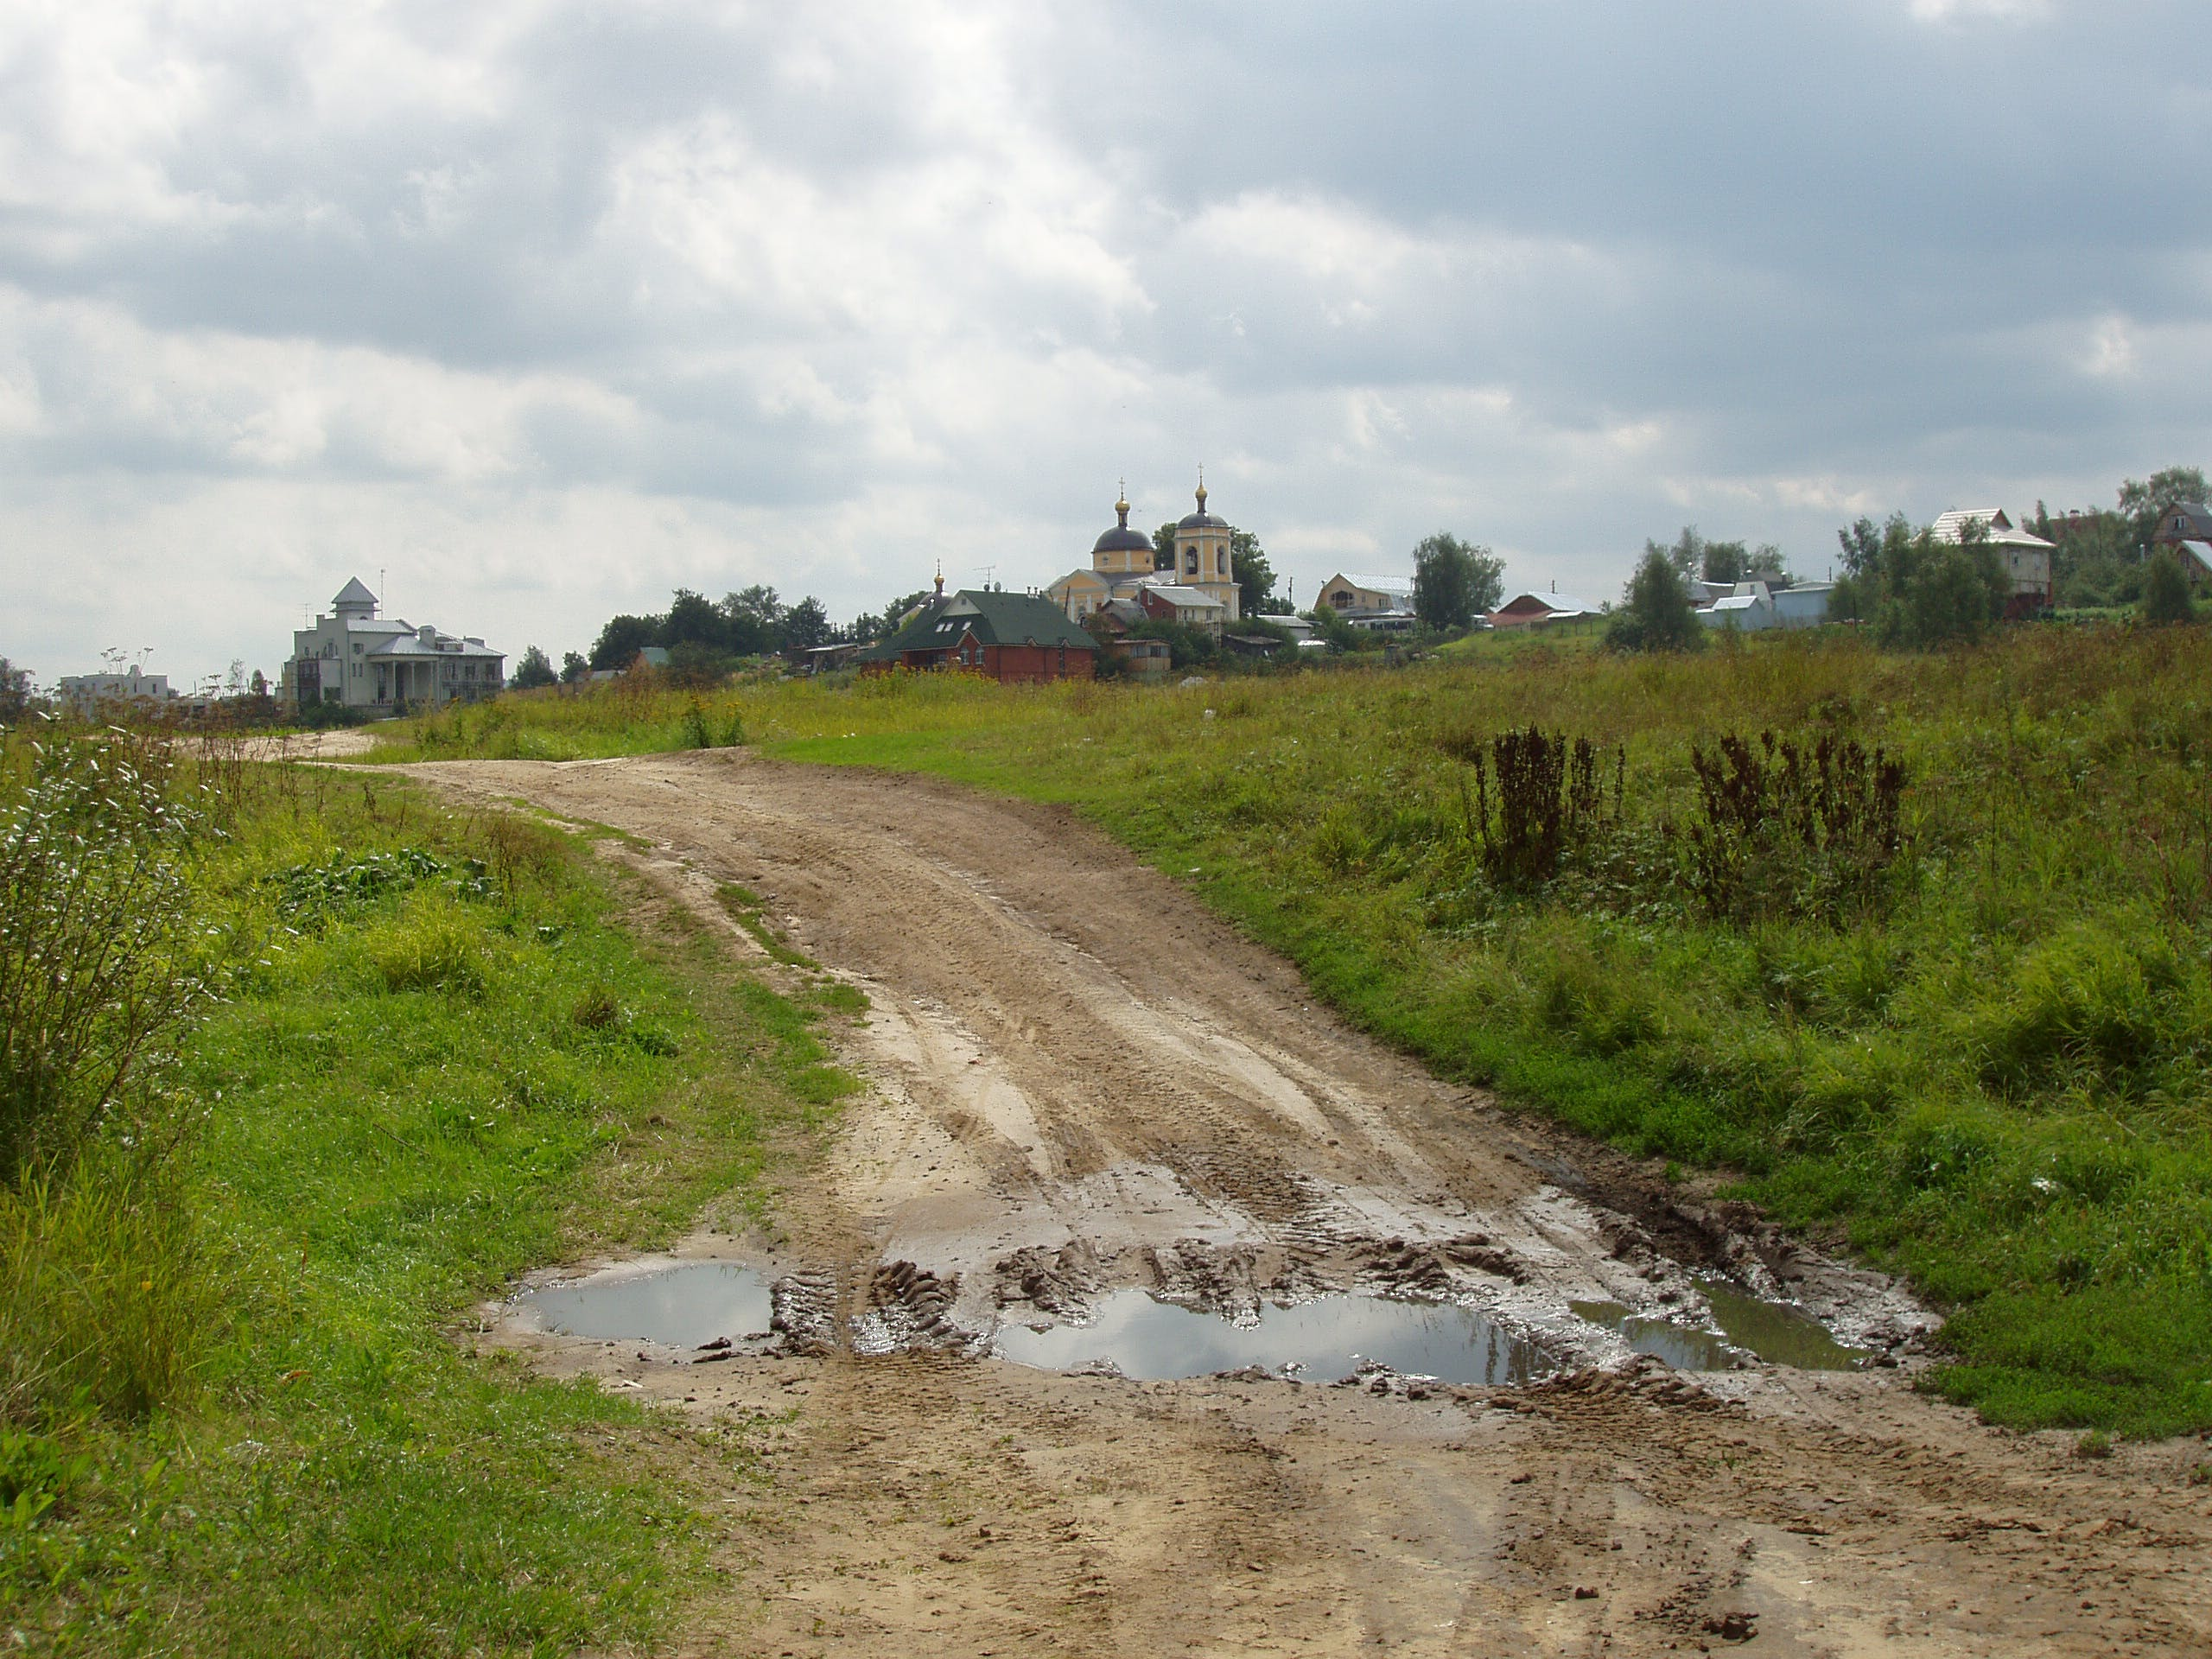 Free stock photo of dirt road, moscow region, orthodox church, puddle